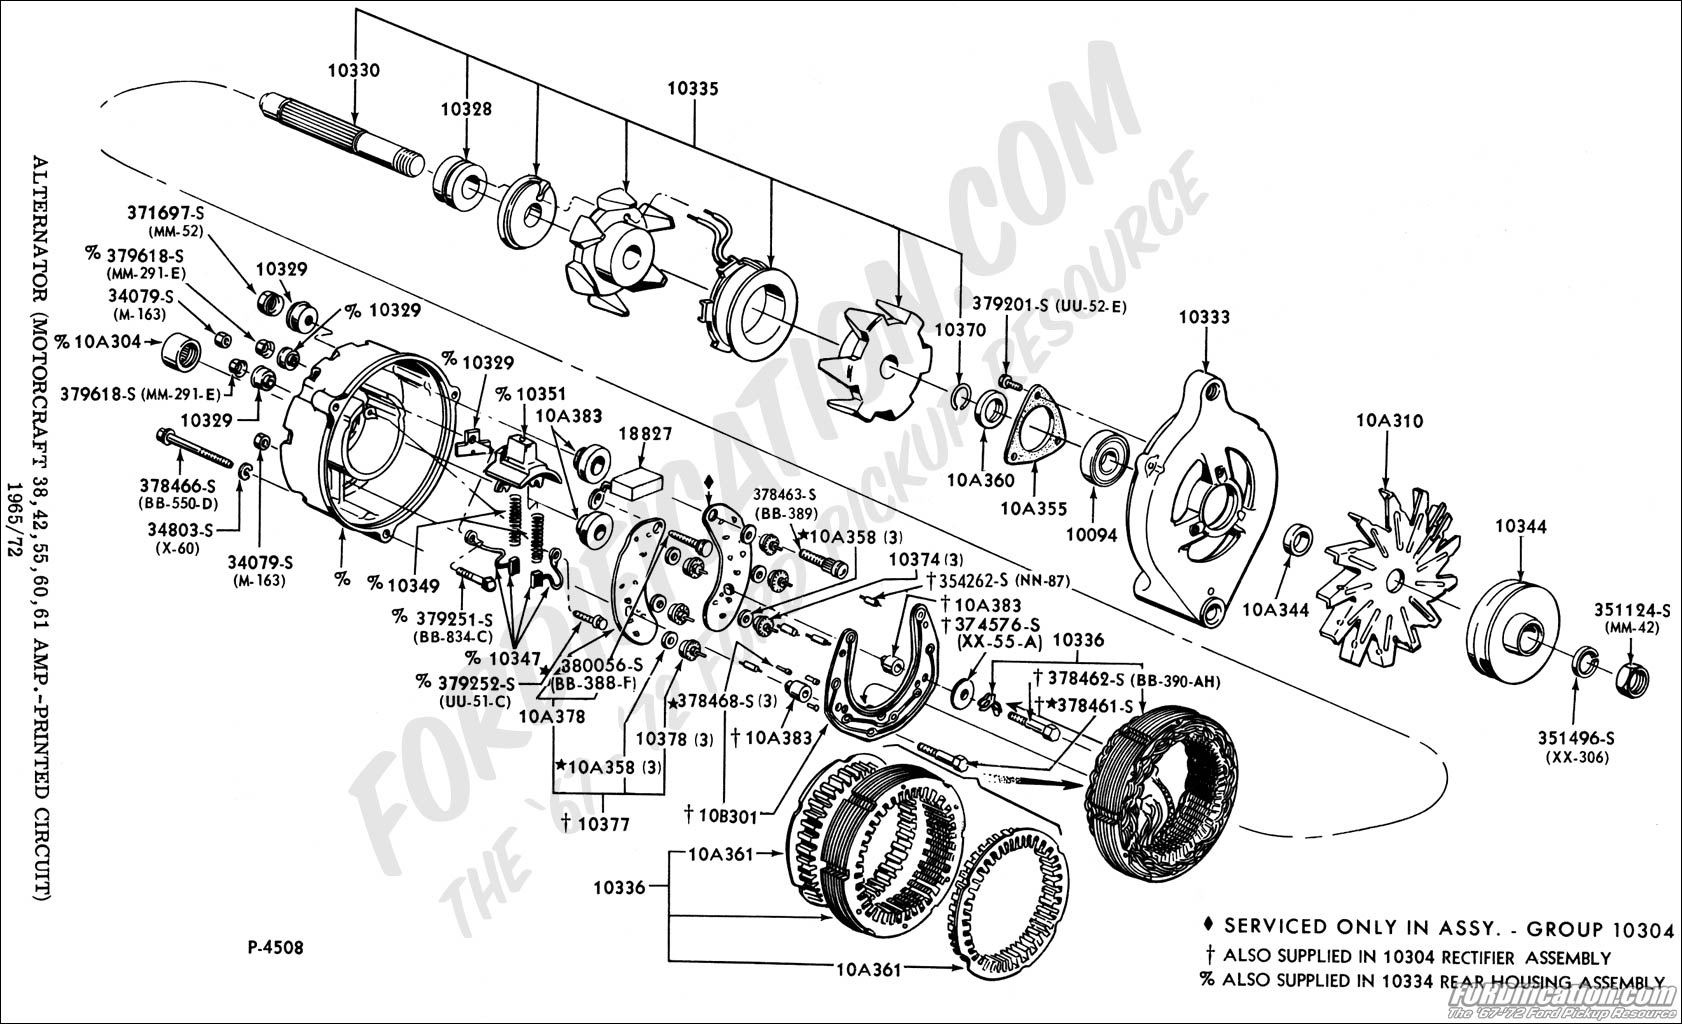 alternator guts diagram - The FORDification.com Forums